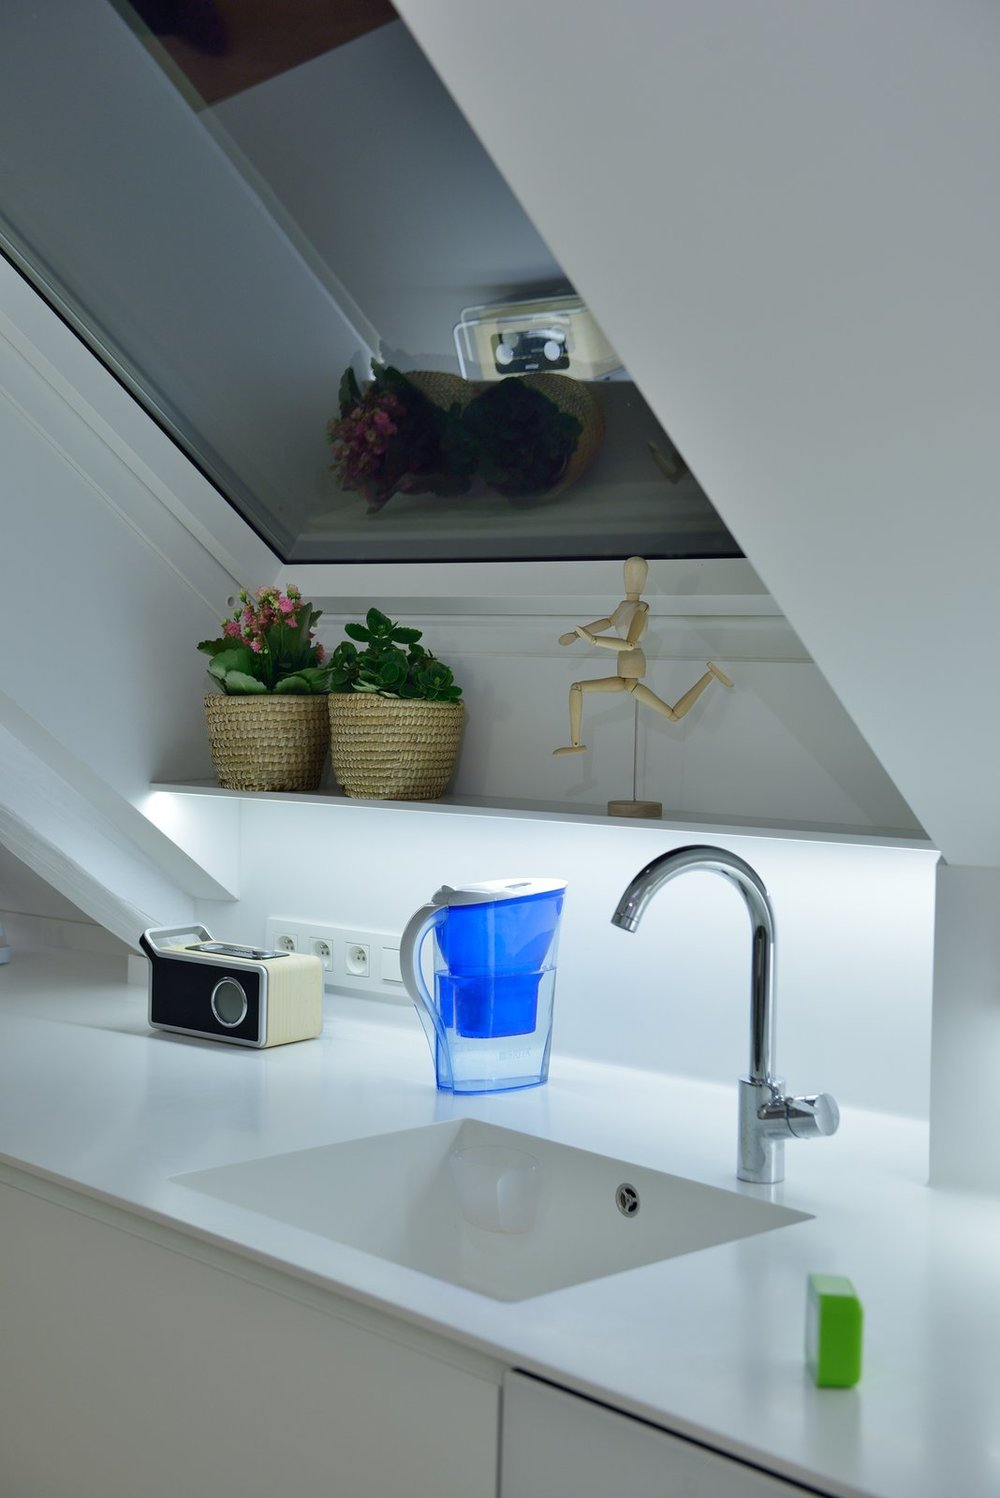 Detail of the kitchen desk with sink made of HI-MACS.  Courtesy of at26 architects